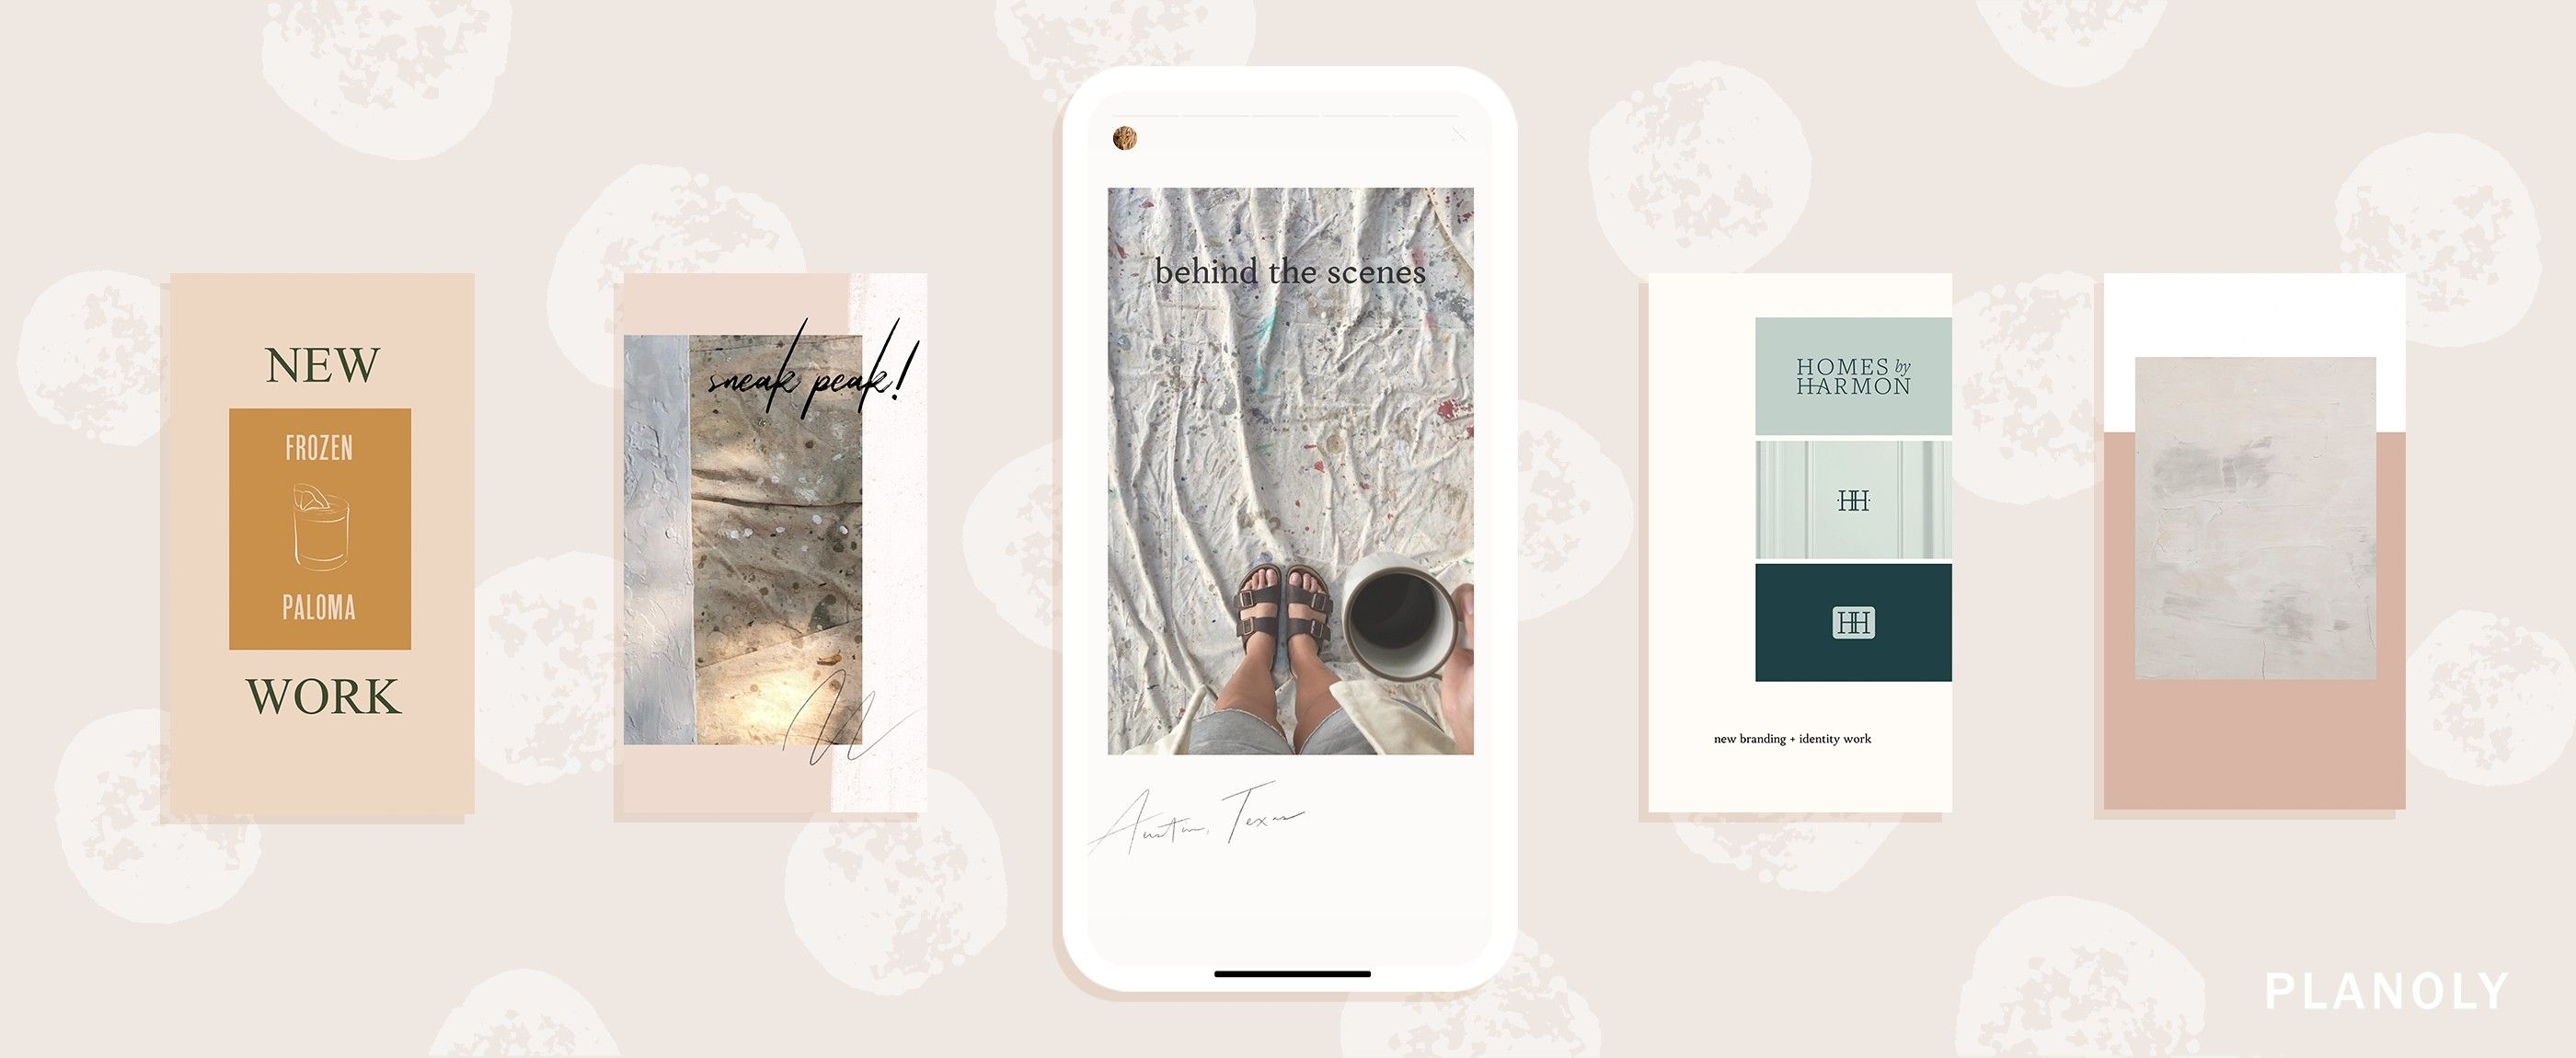 PLANOLY - Blog Post - 4 Easy ways to promote your artwork on Instagram - Feature Image